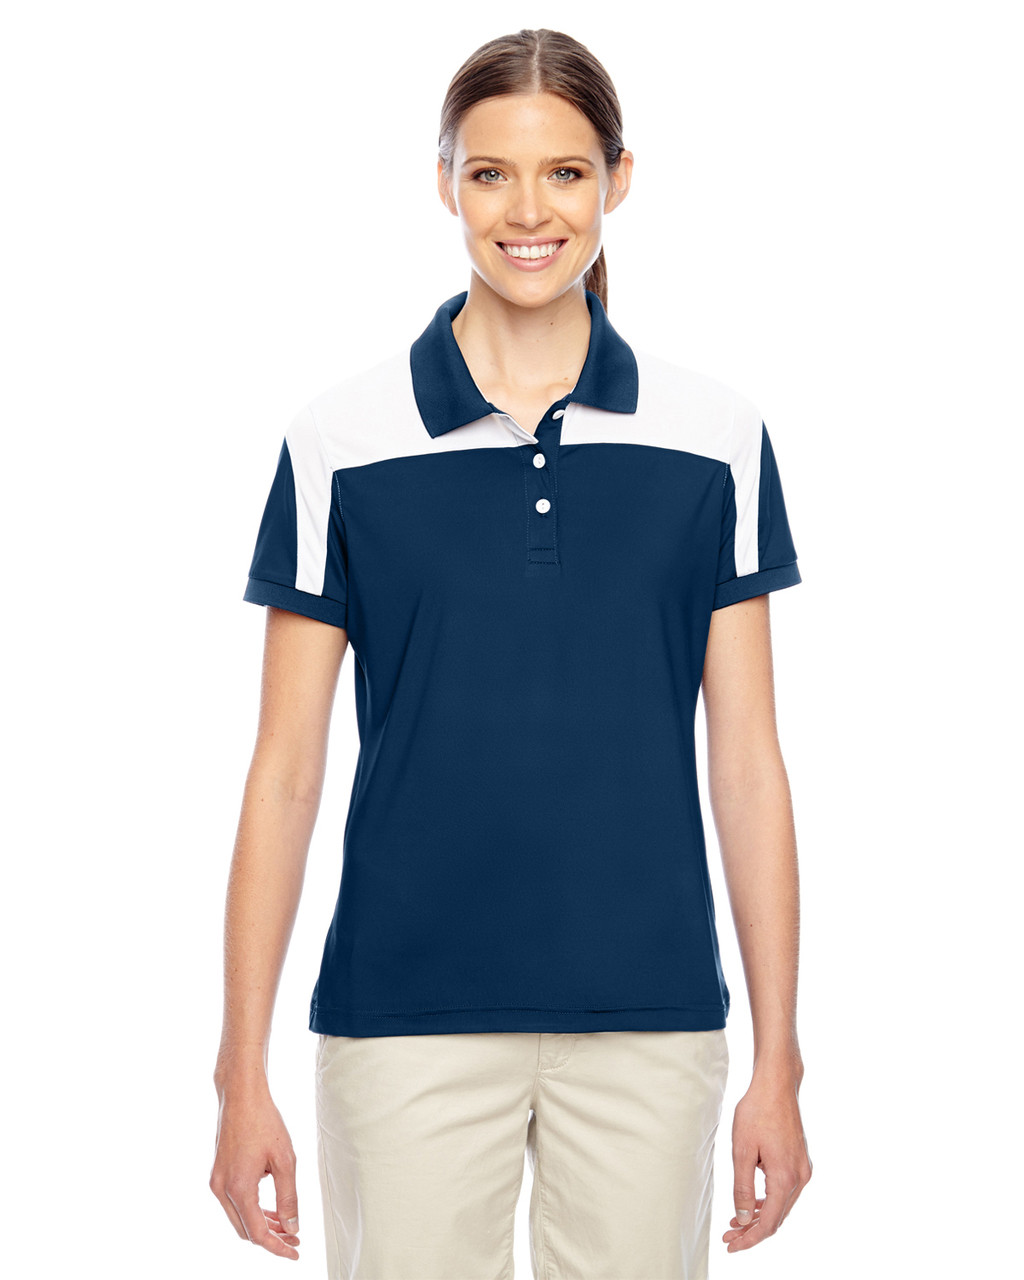 Dark Navy/White - TT22W Team 365 Victor Performance Polo Shirt